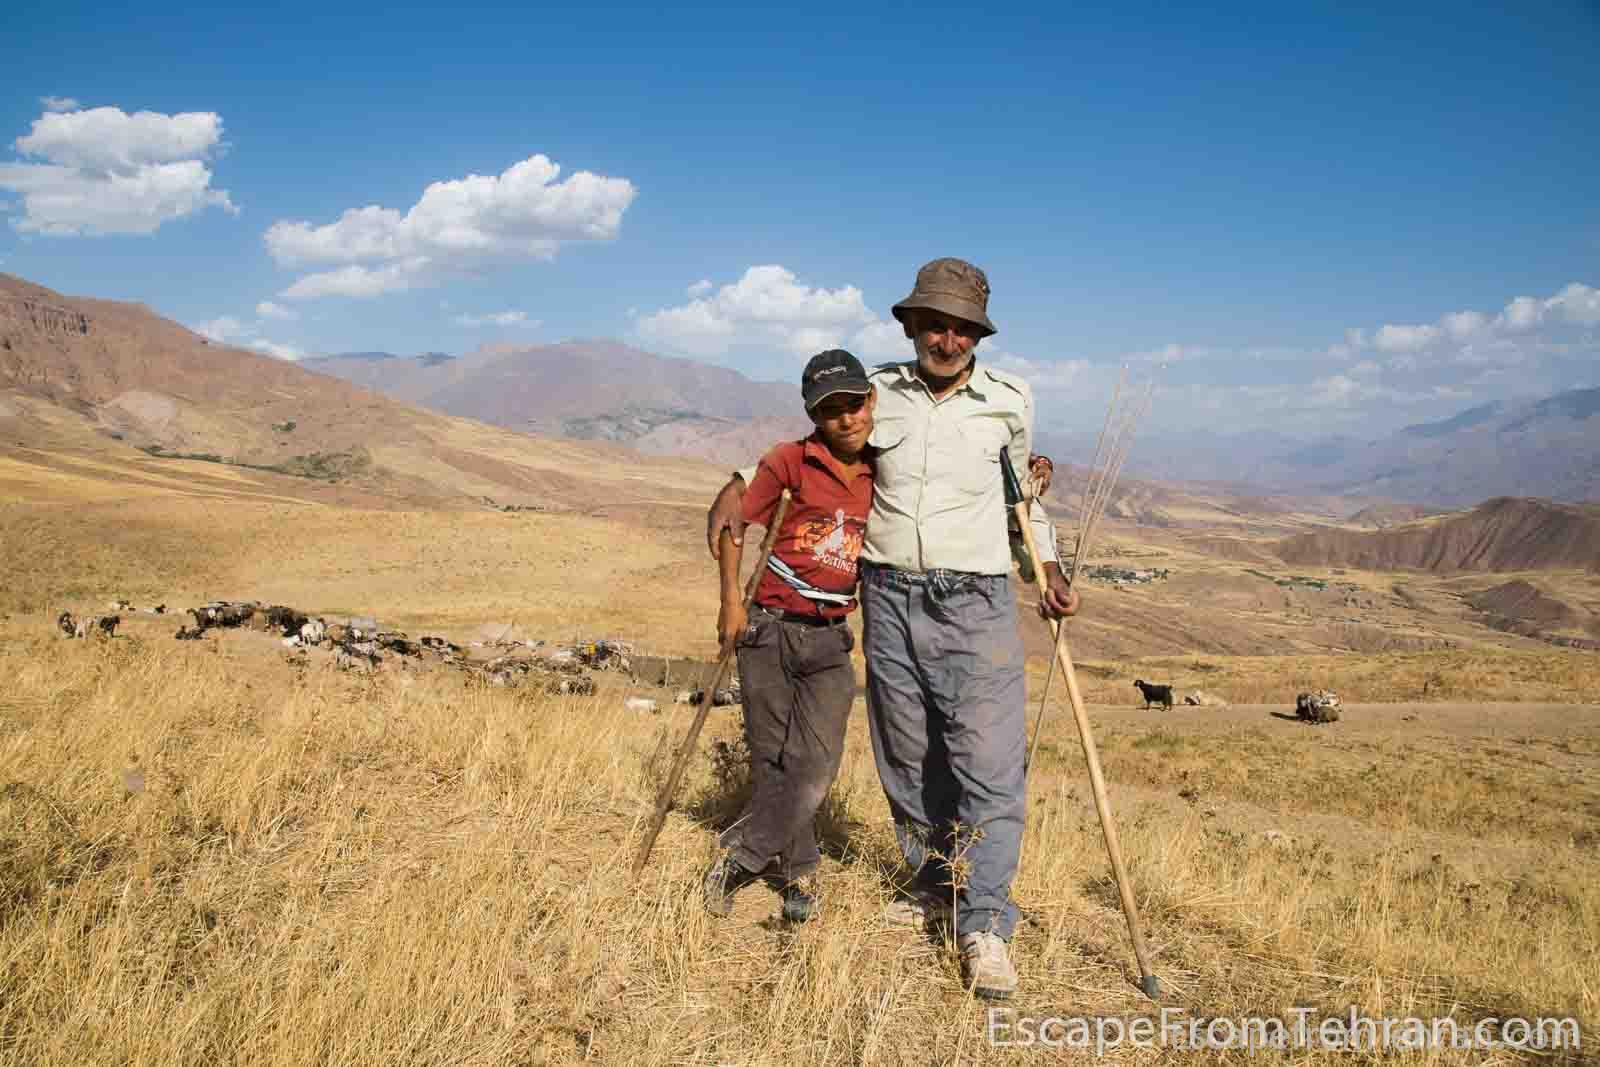 Shepherd and assistant, near Alamut Castle, Qazvin Province, Iran.